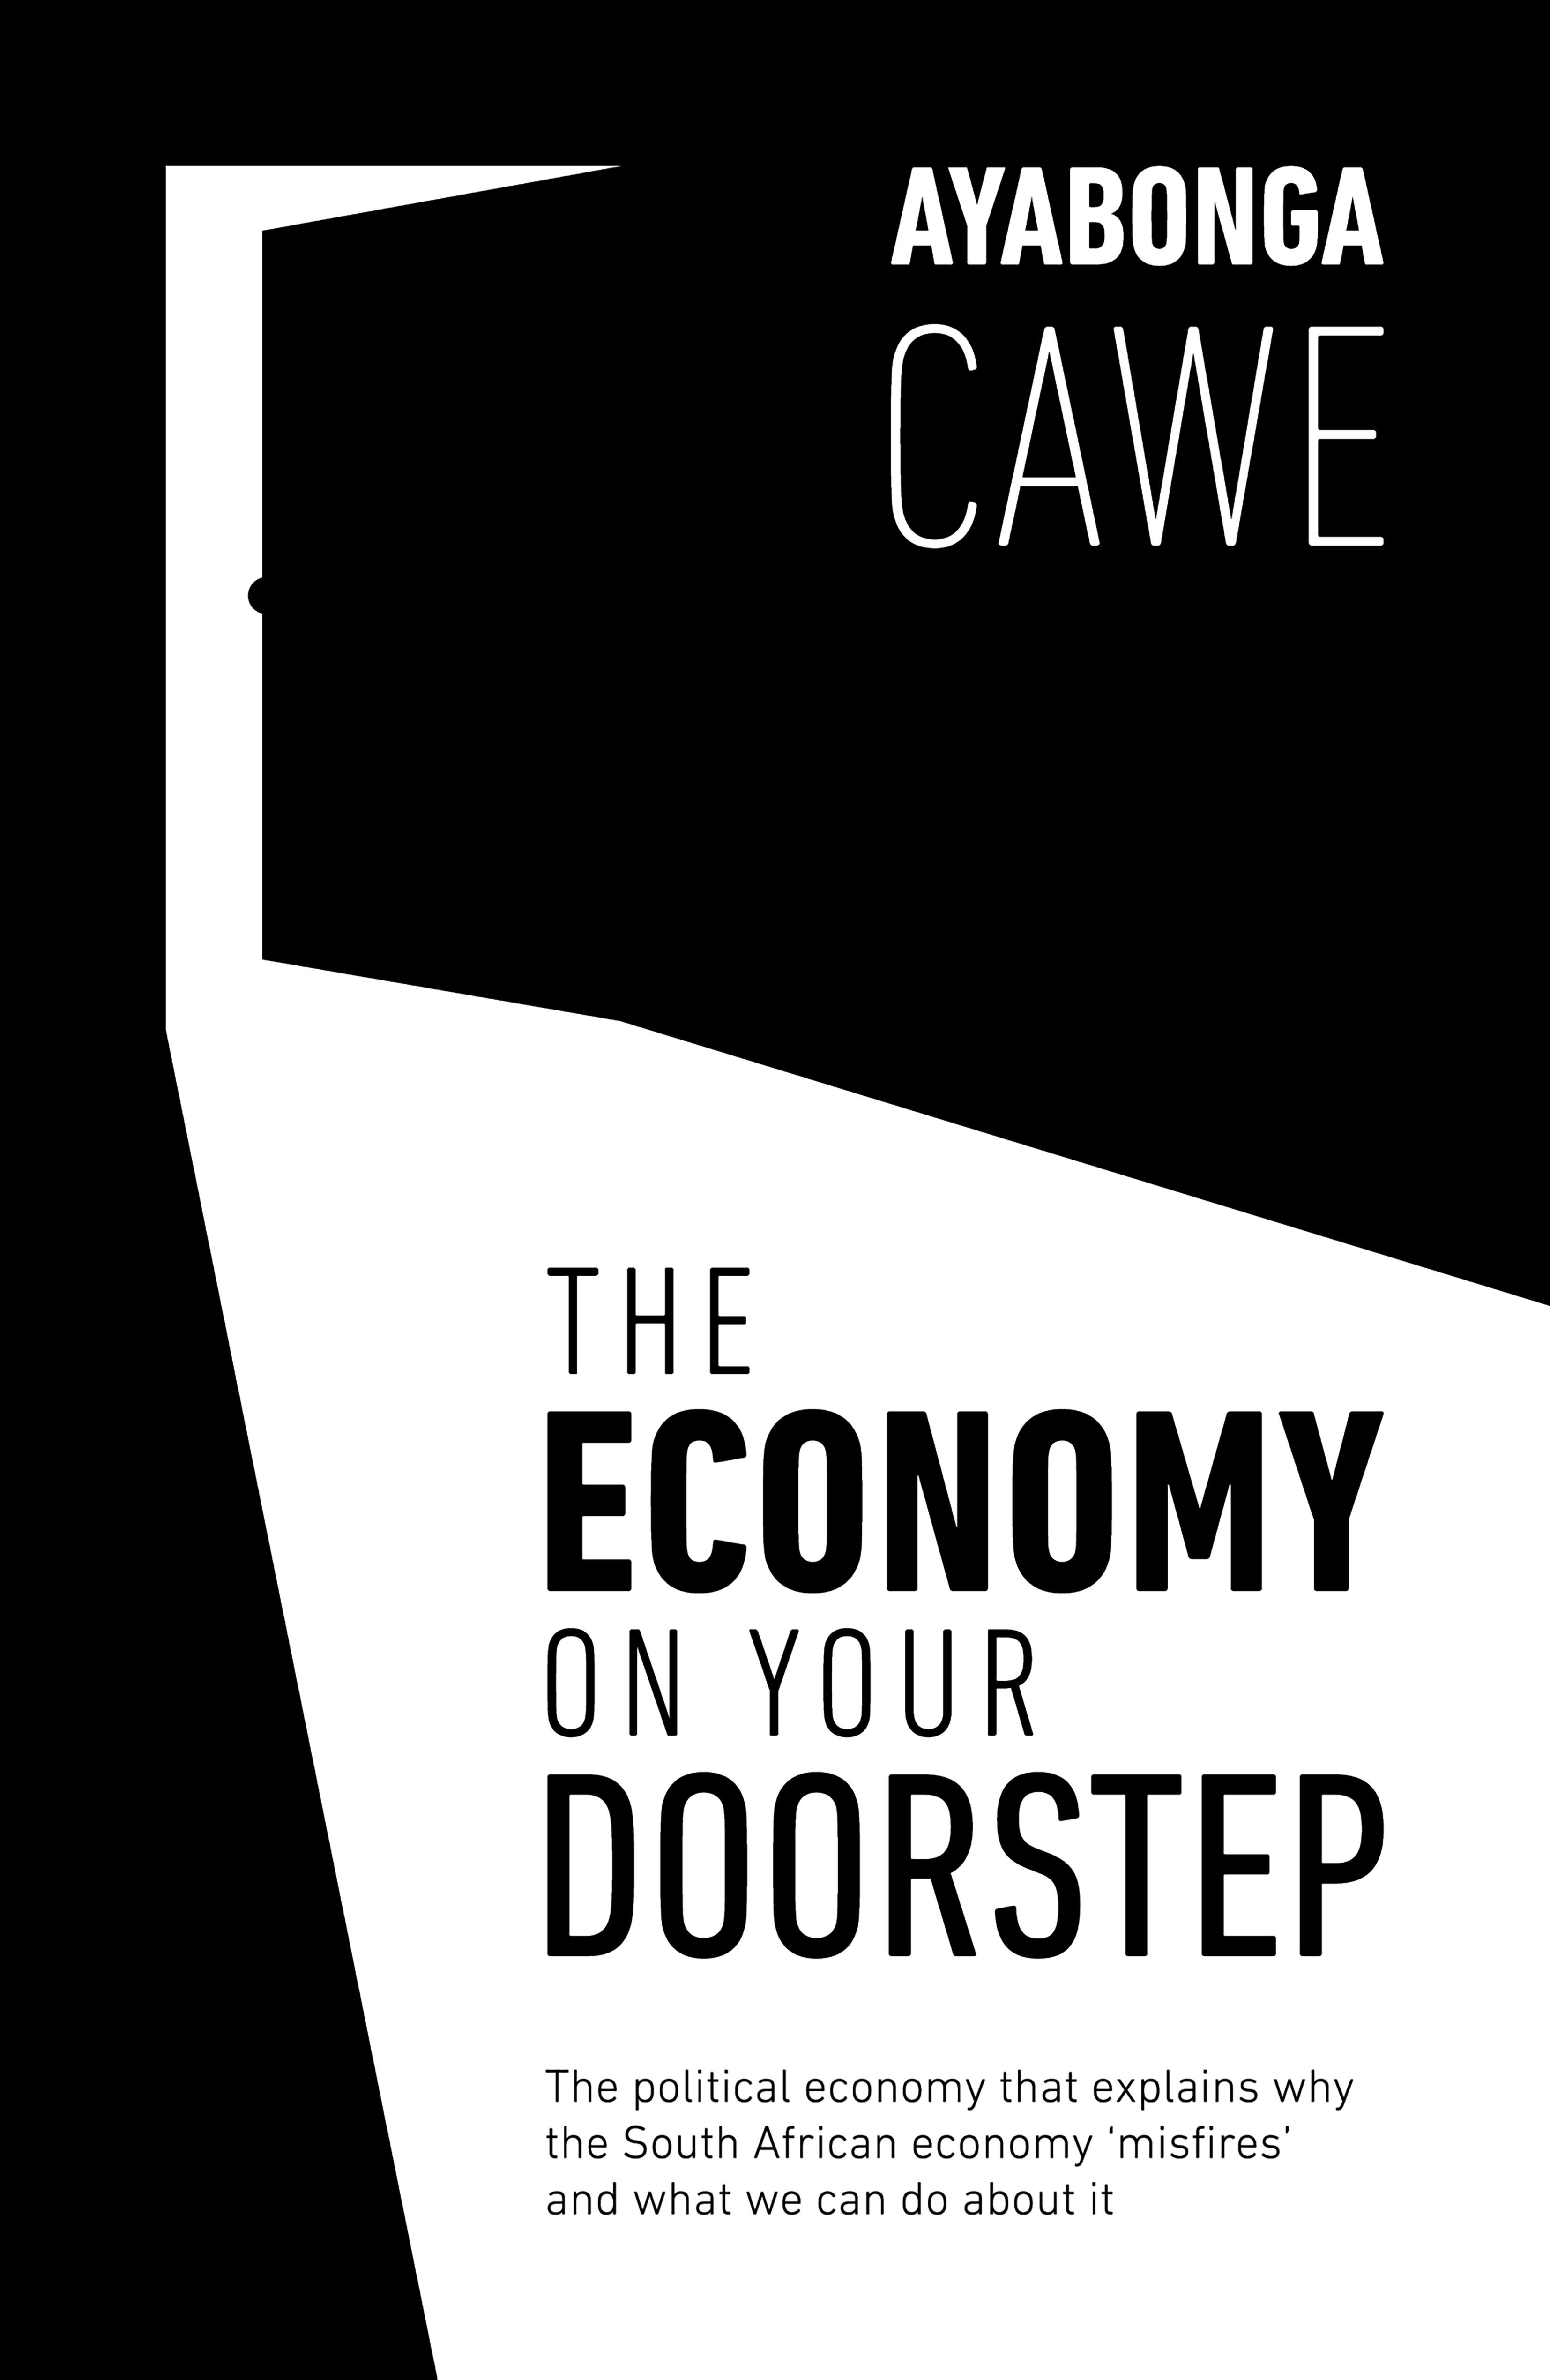 The Economy On Your Doorstep : The Political Economy That Explains Why the South African Economy 'Misfires' and What We Can Do About It